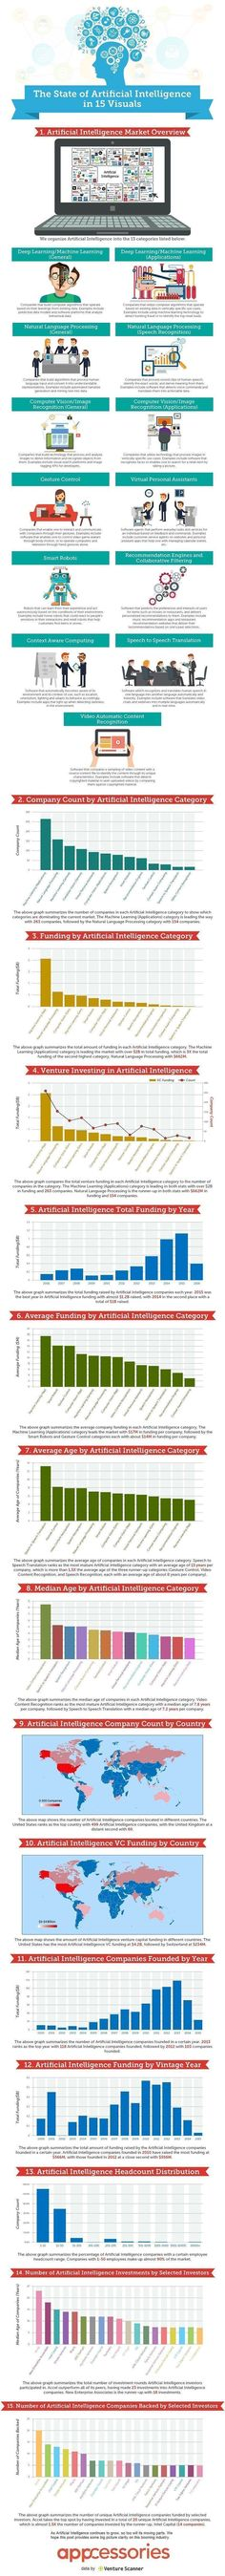 The State of Artificial Intelligence Infographic #artificialintelligence